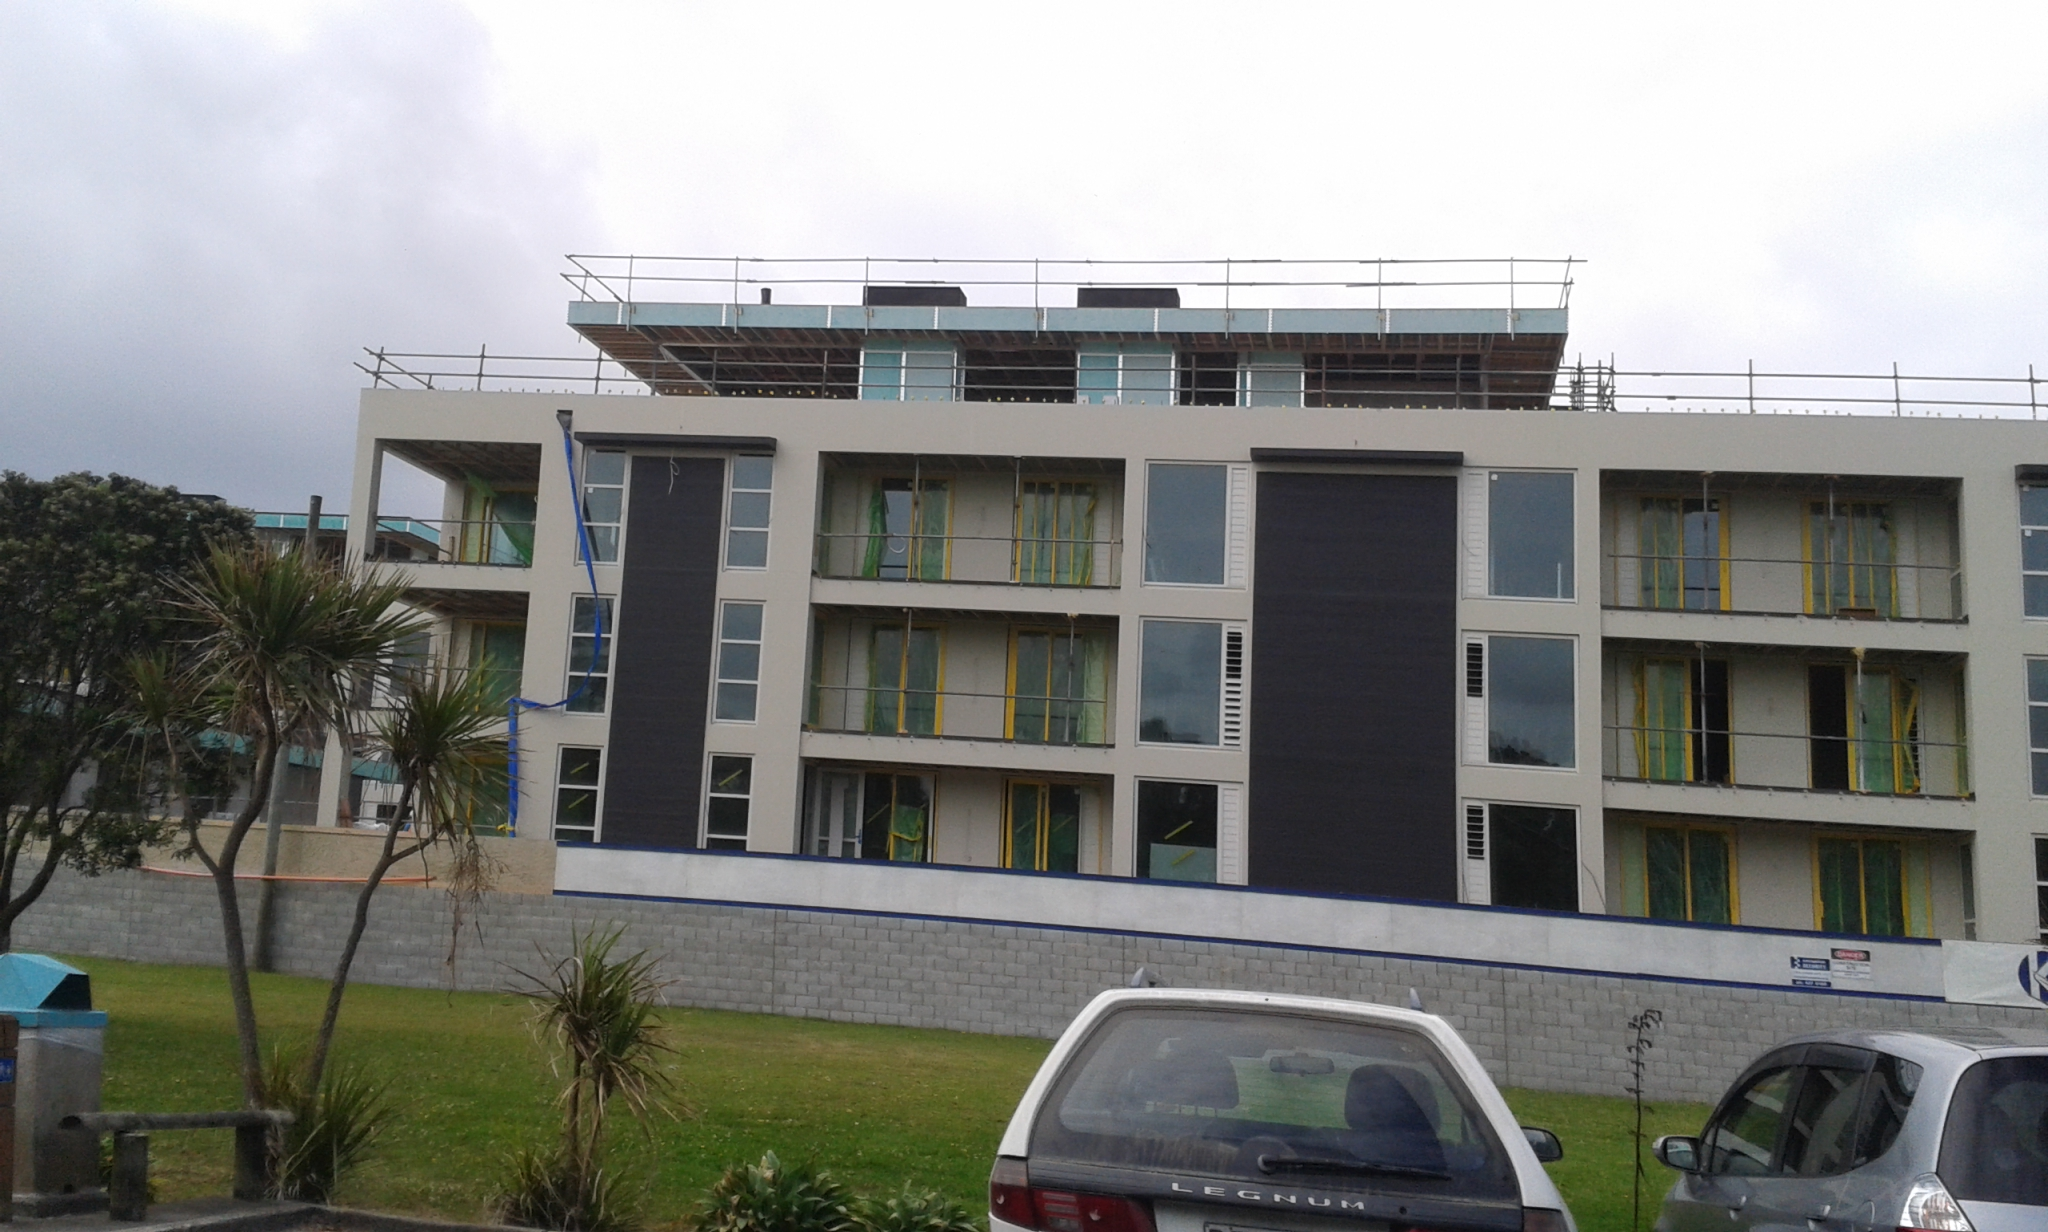 Owera Apartment Building nearly completed